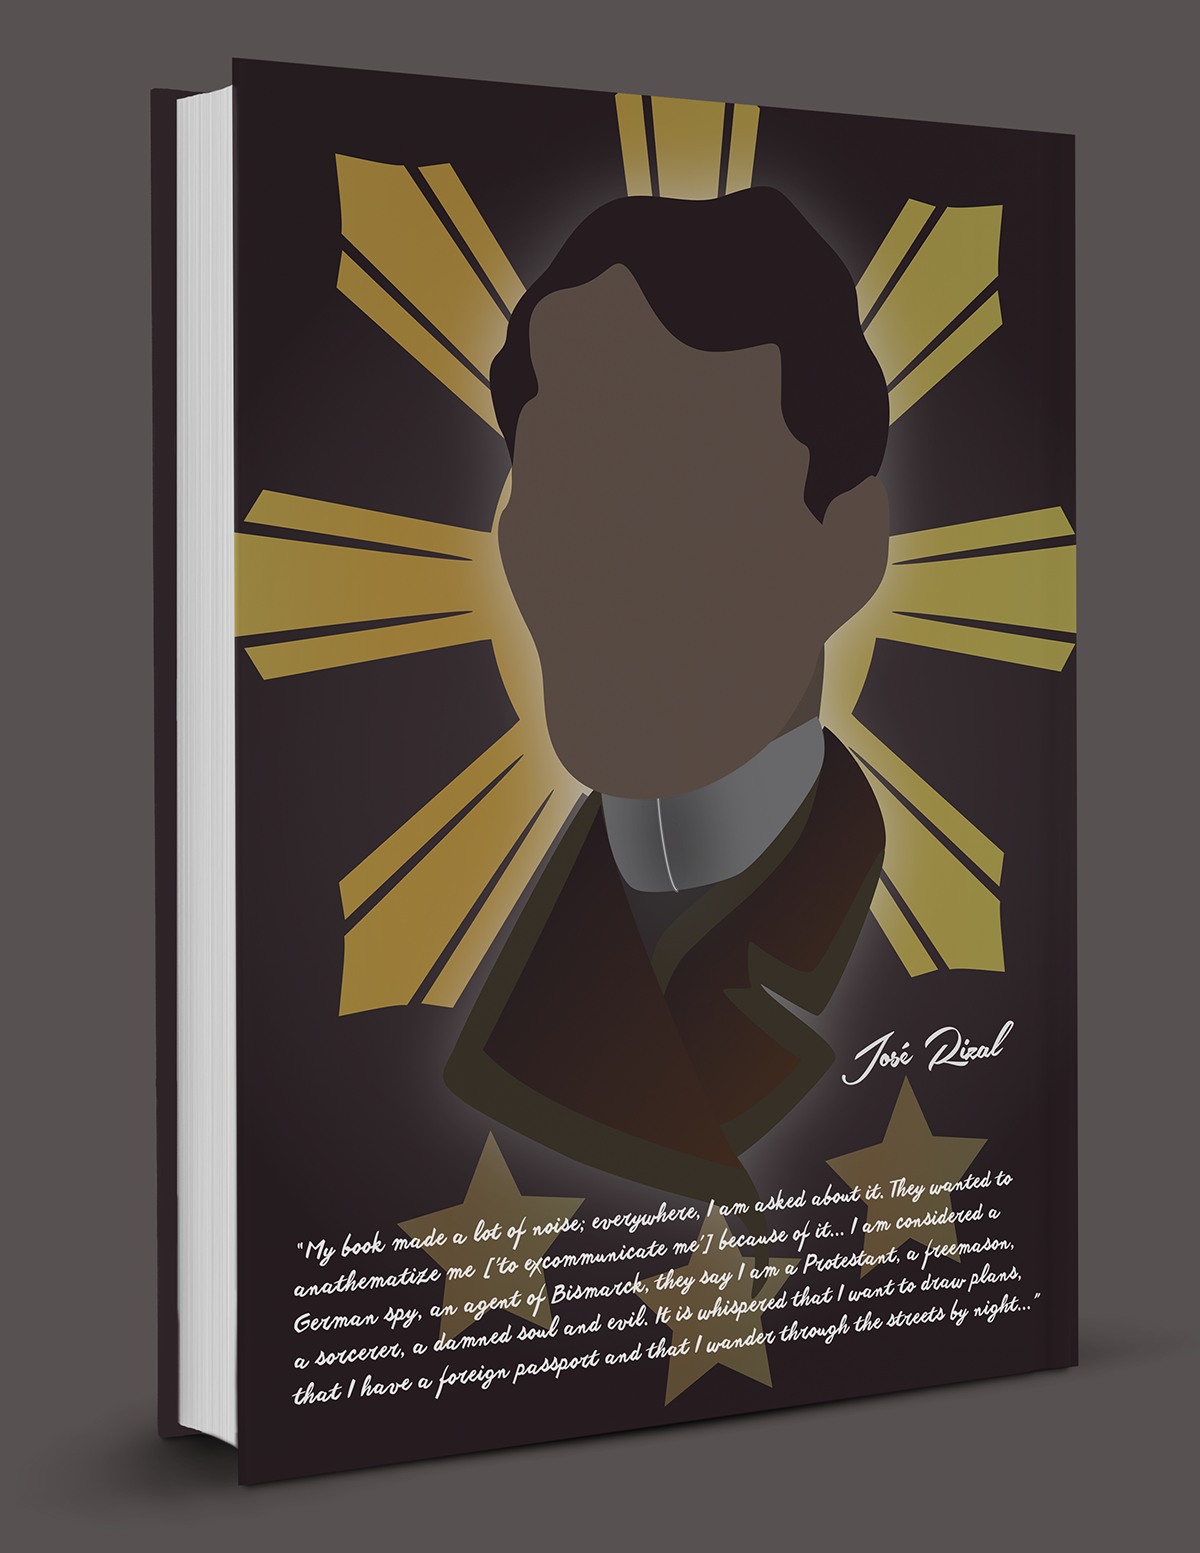 Noli me tngere jos rizal book cover on behance front cover to those who are not familiar with this book nor the historical importance of the author to the philippines you might be asking yourself solutioingenieria